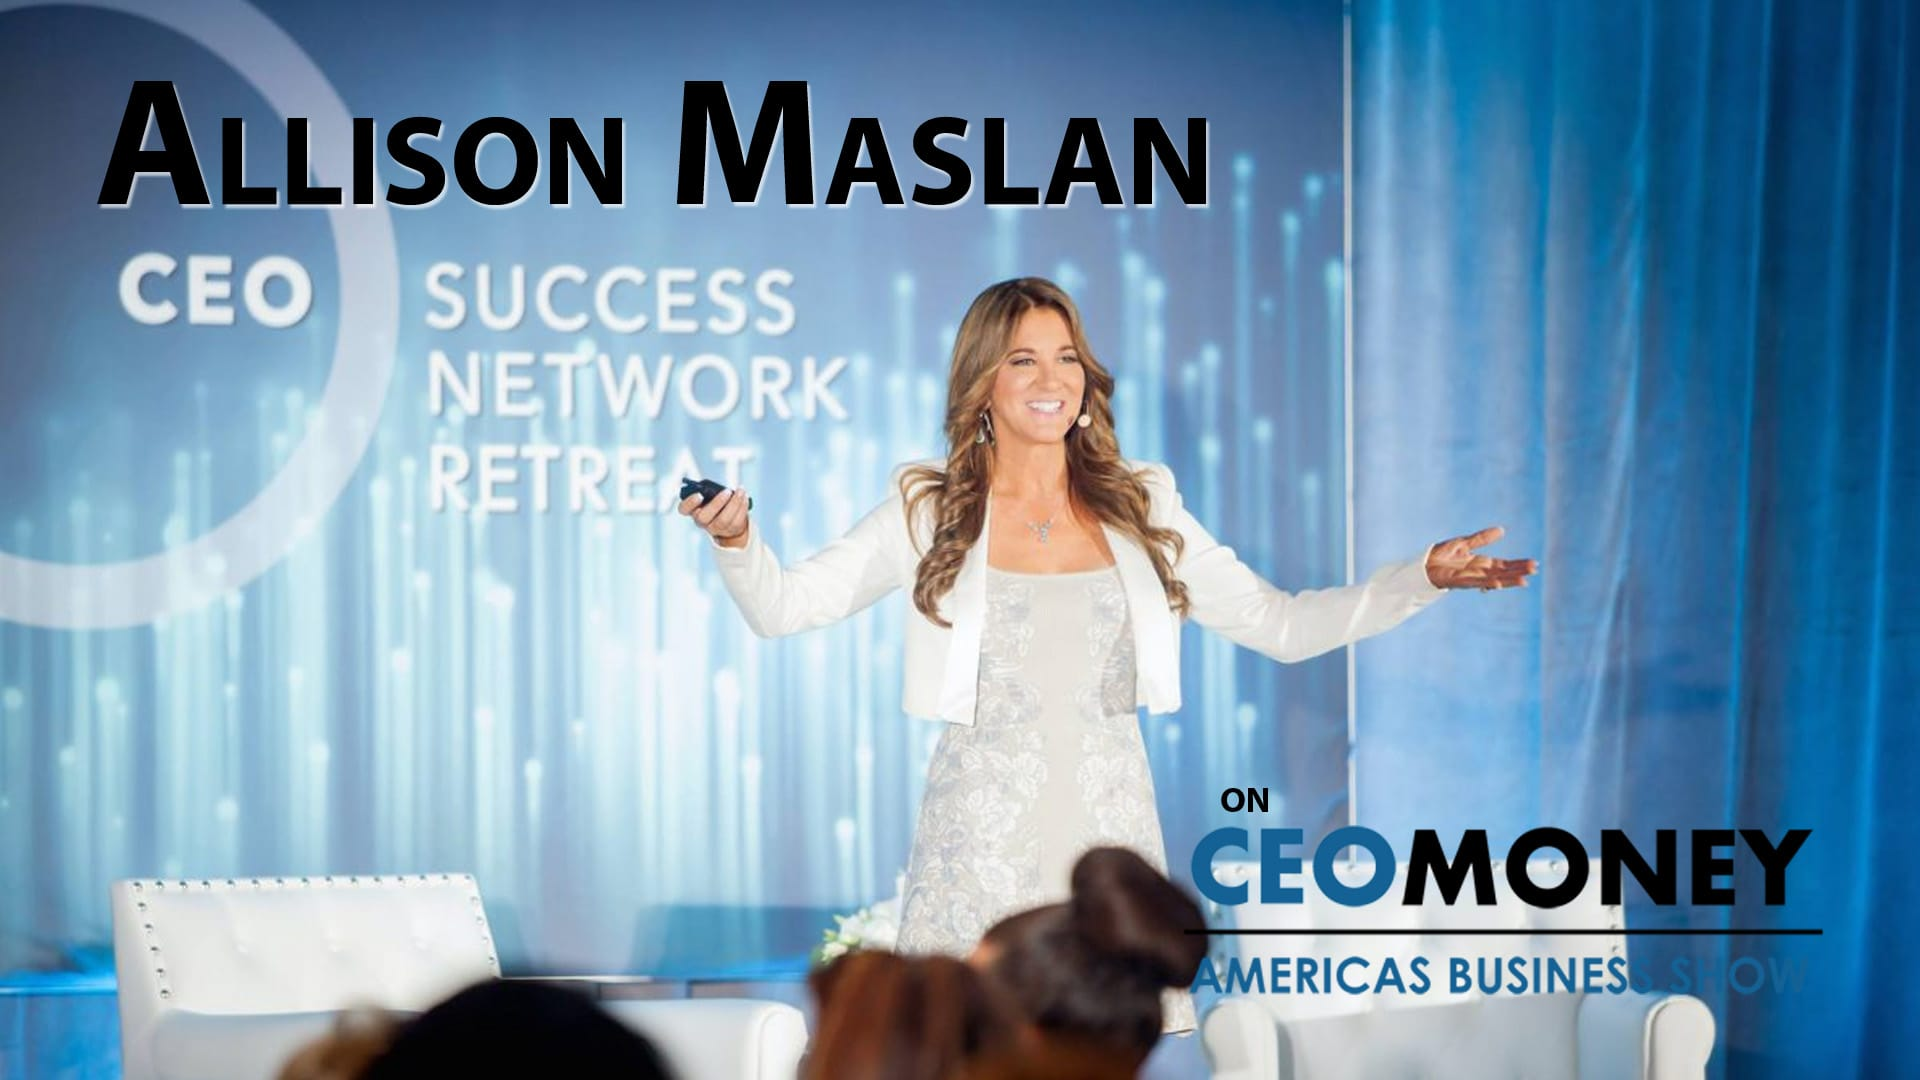 Allison Maslan has a new book to help entrepreneurs take daring leaps to multiply their business growth